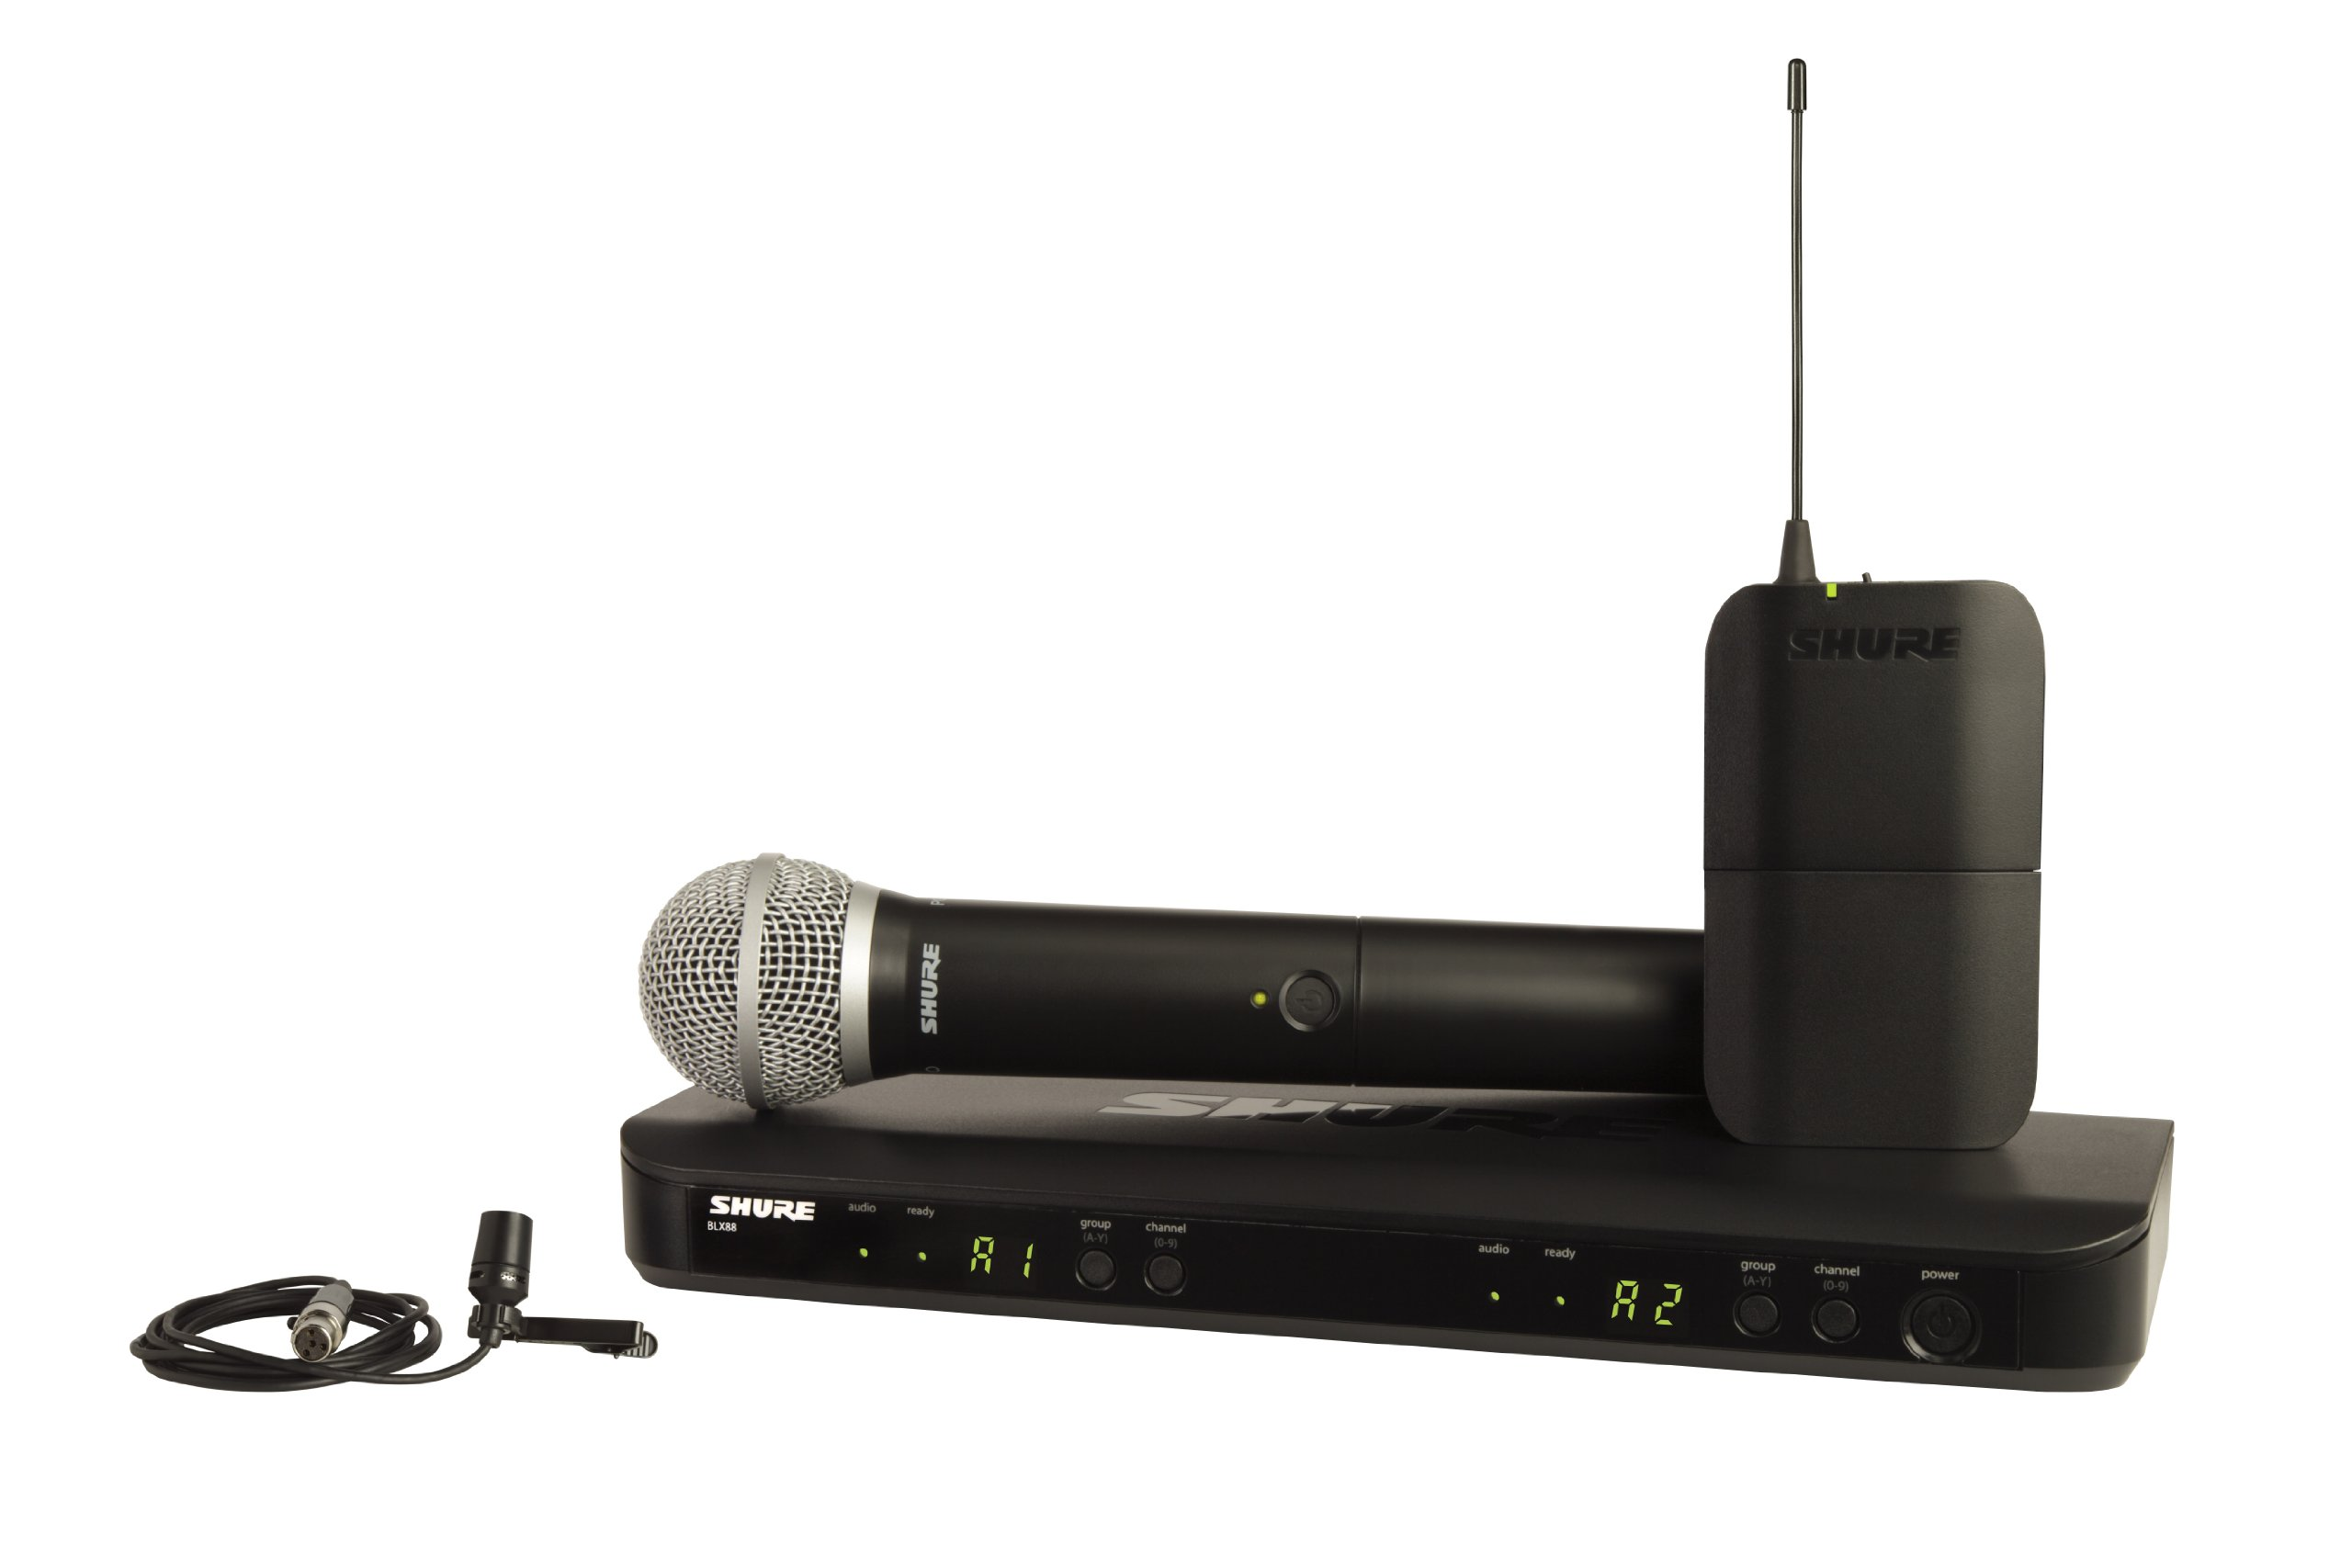 Shure BLX1288/CVL Dual Channel Combo Wireless System with PG58 Handheld and CVL Lavalier Microphone, J10